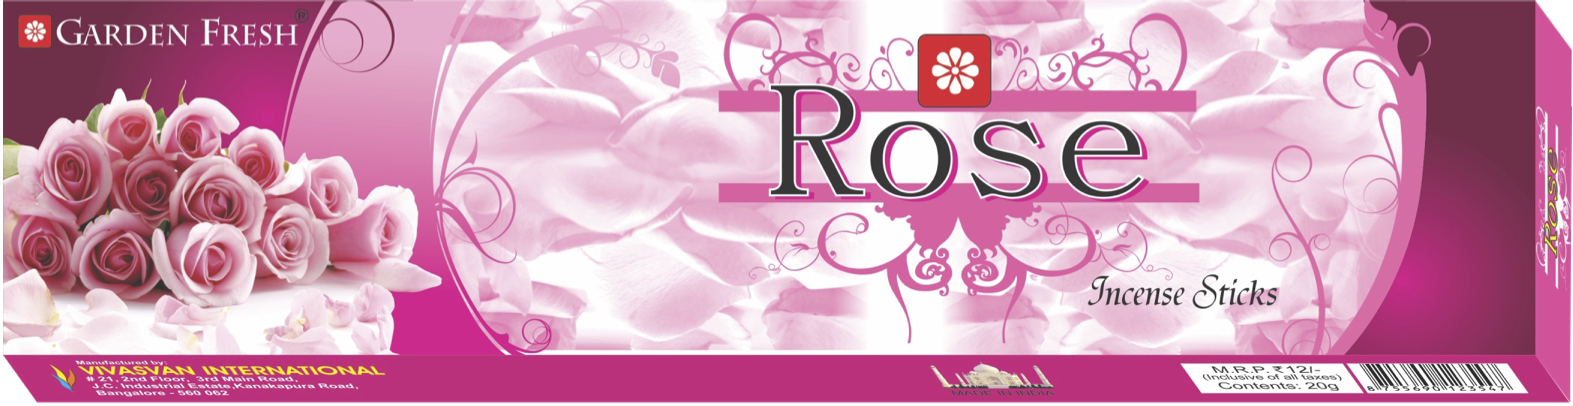 ROSE - Rose is one of the world's most valued fragrances. Enjoy this complex and sweet floral aroma that will uplift your mood.Net weight: 20 grams